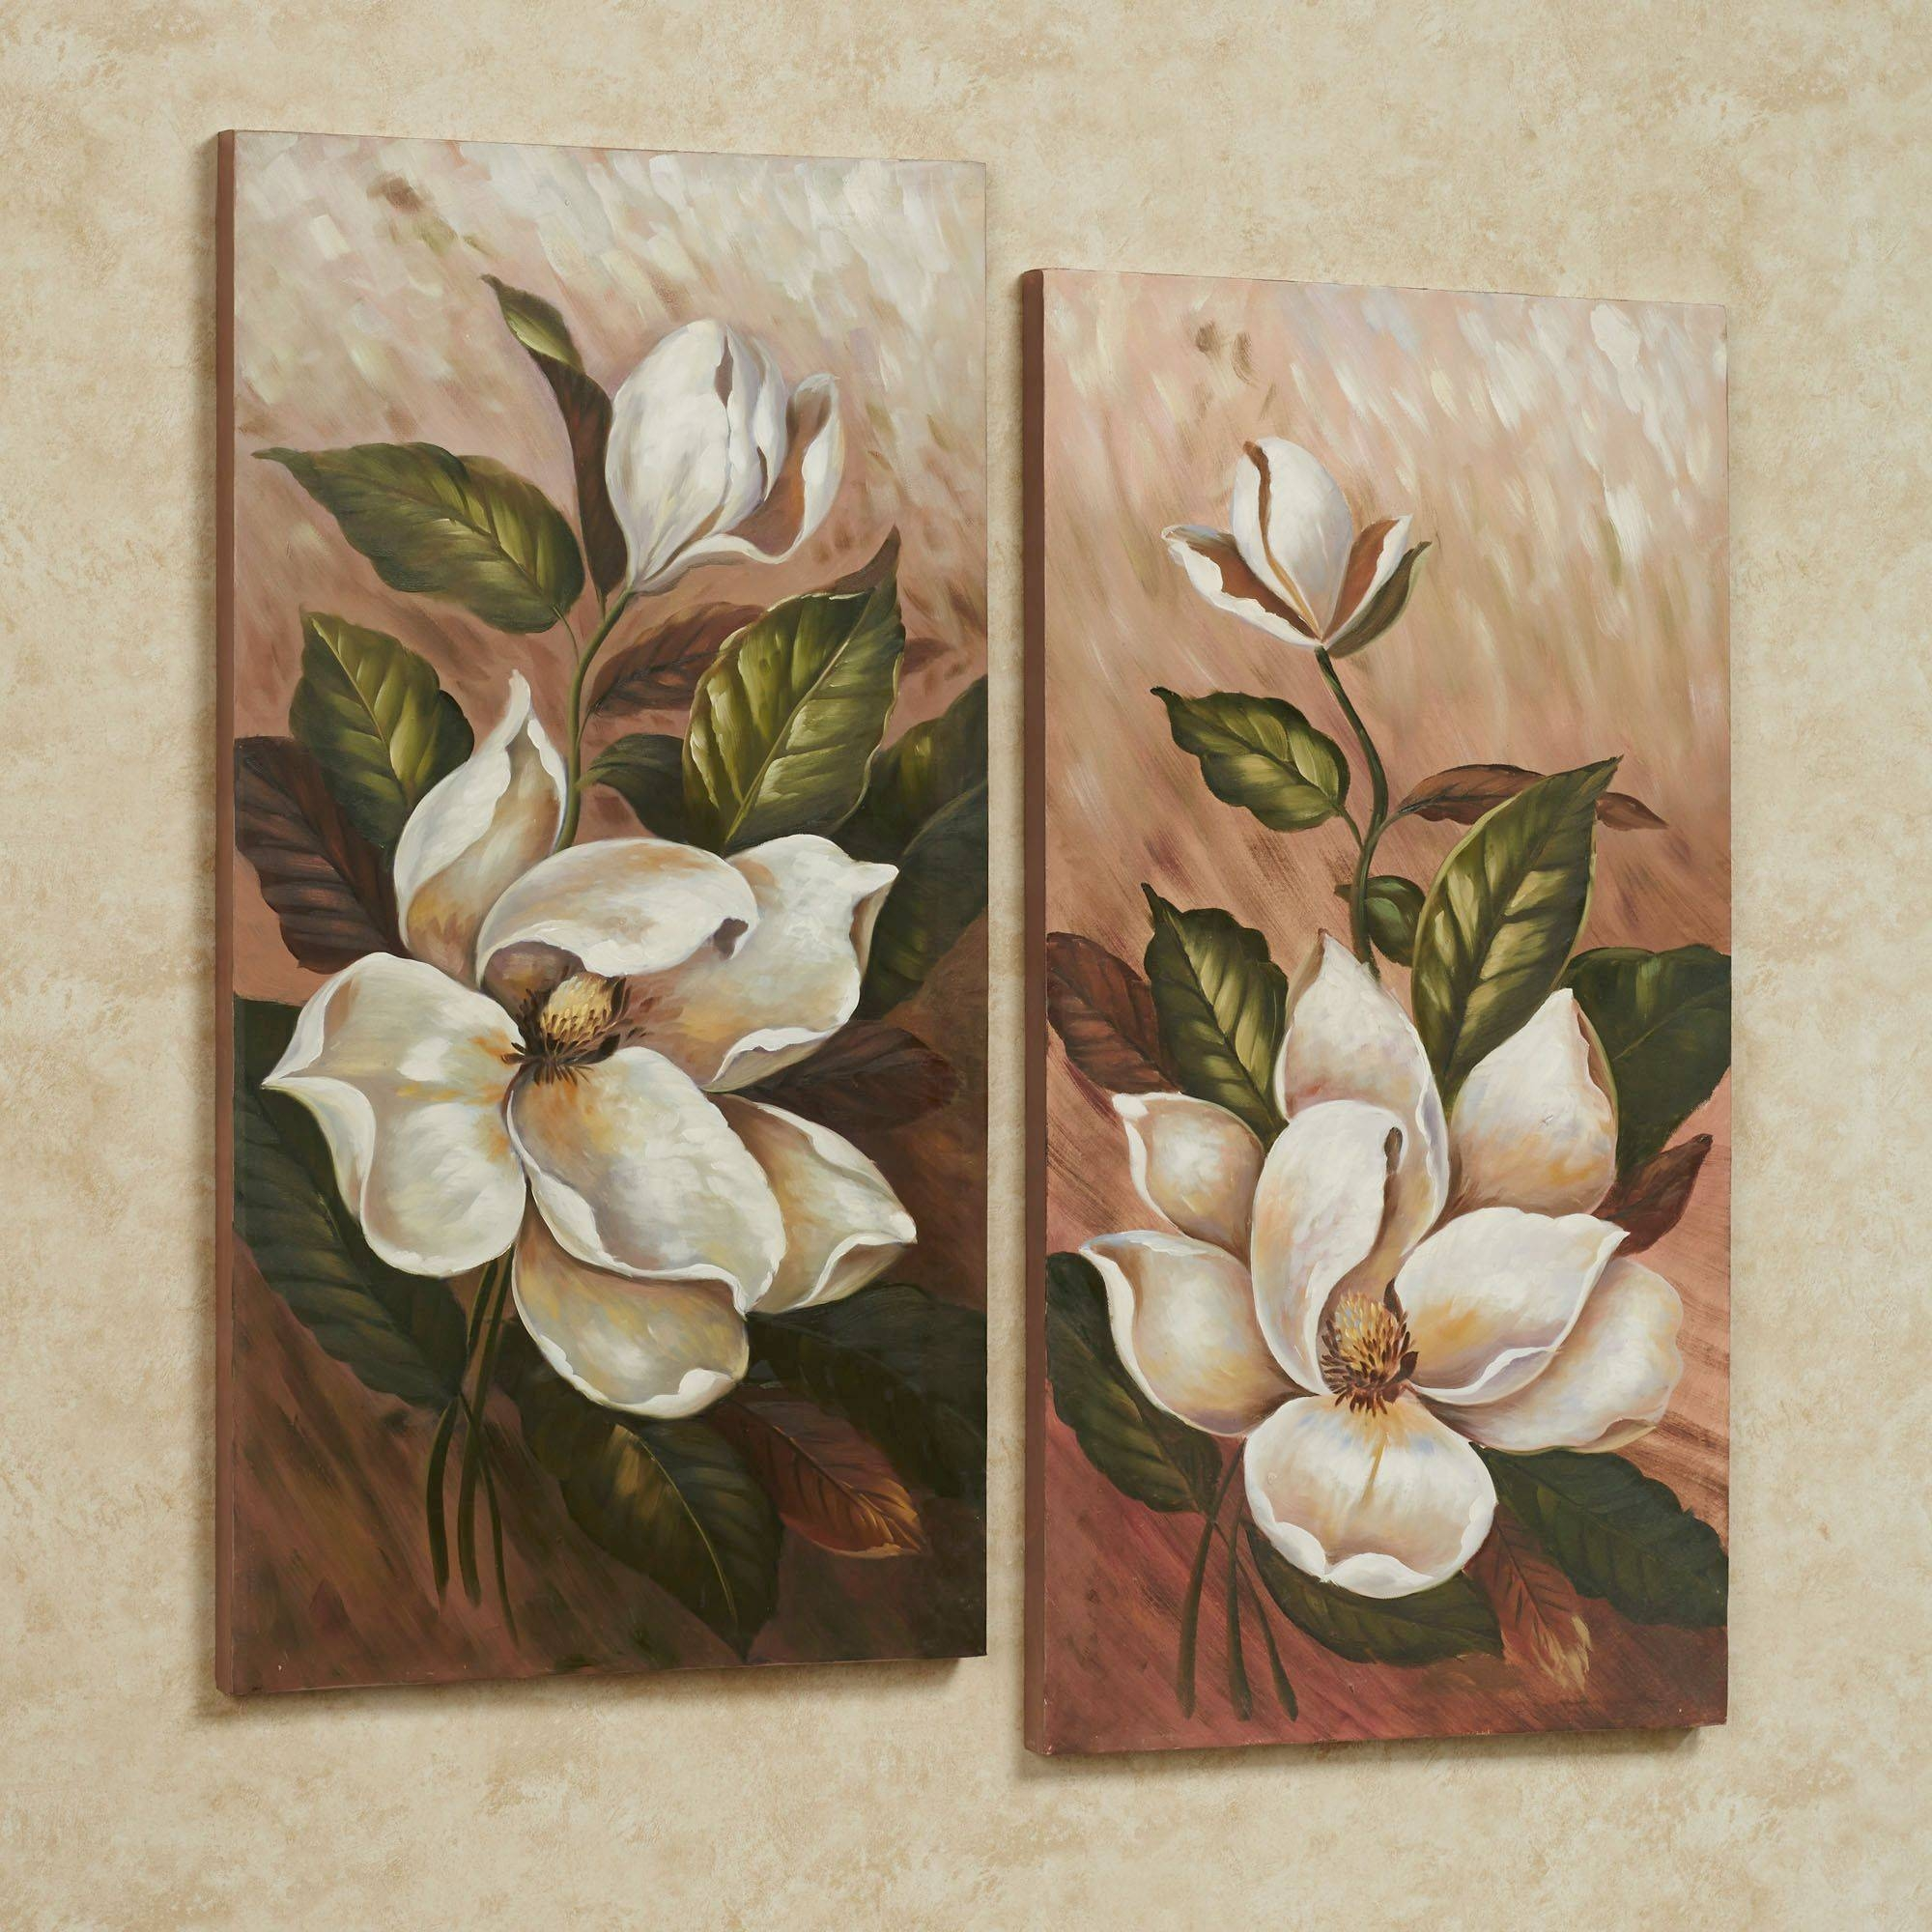 Wall Art Designs: Canvas Wall Art Annalynn Magnolia Wall Art With Best And Newest Floral Wall Art Canvas (View 16 of 20)